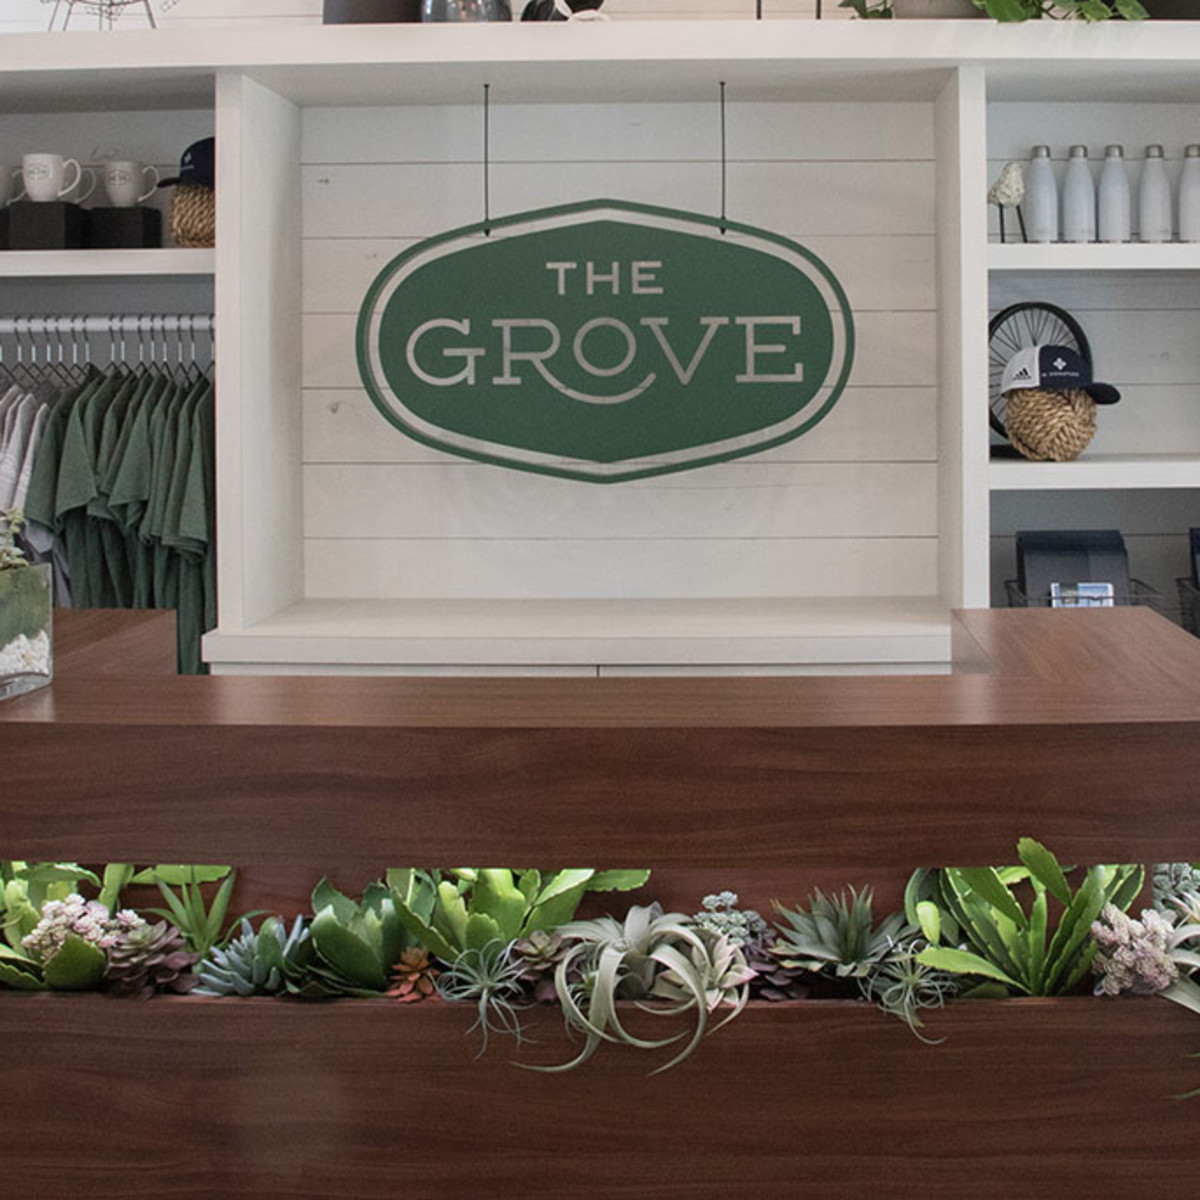 The Grove Store at Shoal Creek